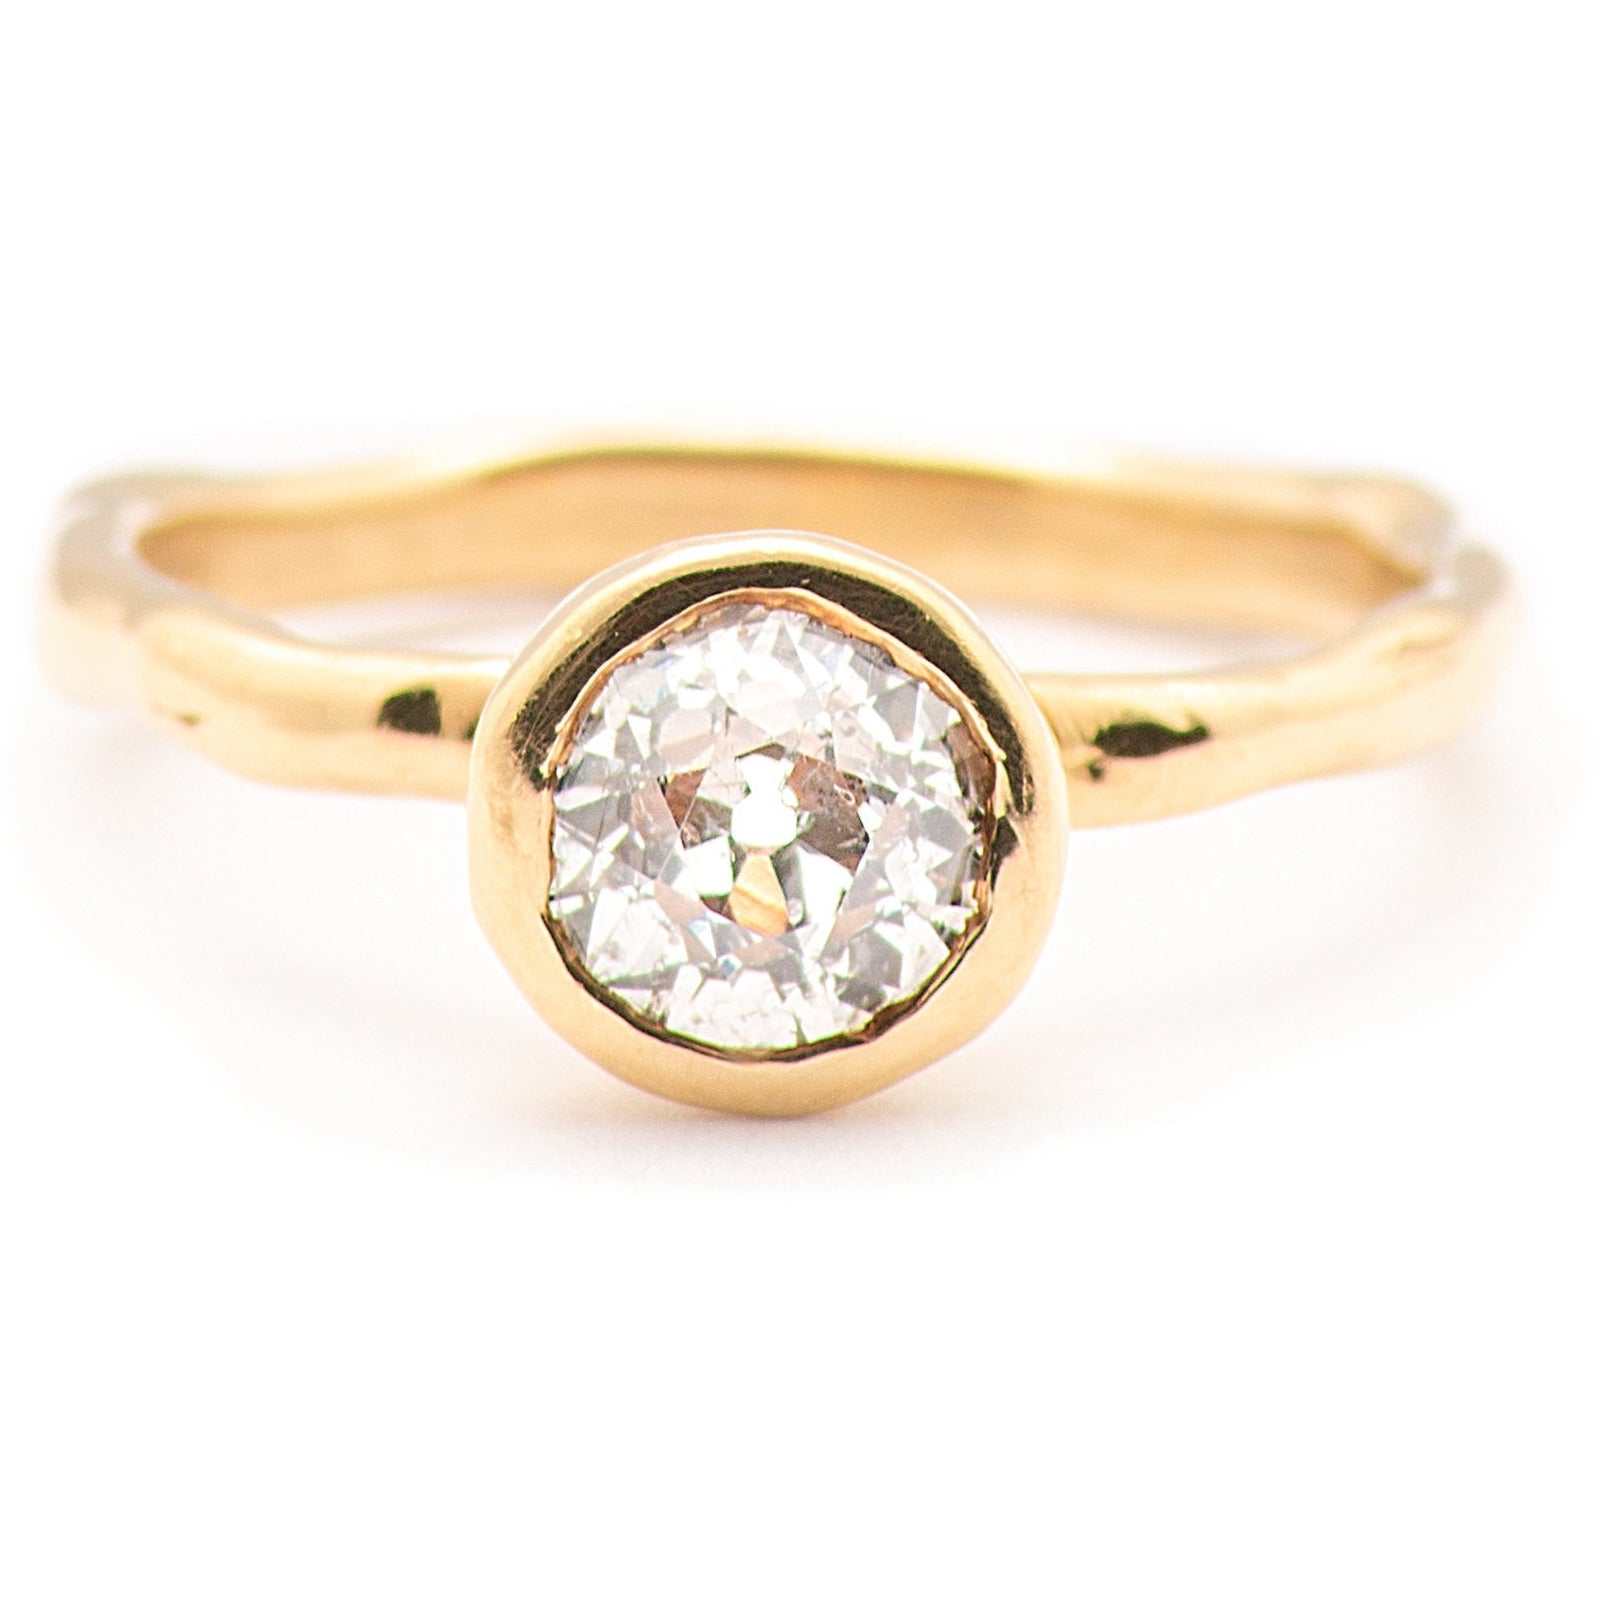 Quintessential JBJD Melt Gold Solitaire - Johanna Brierley Jewellery Design